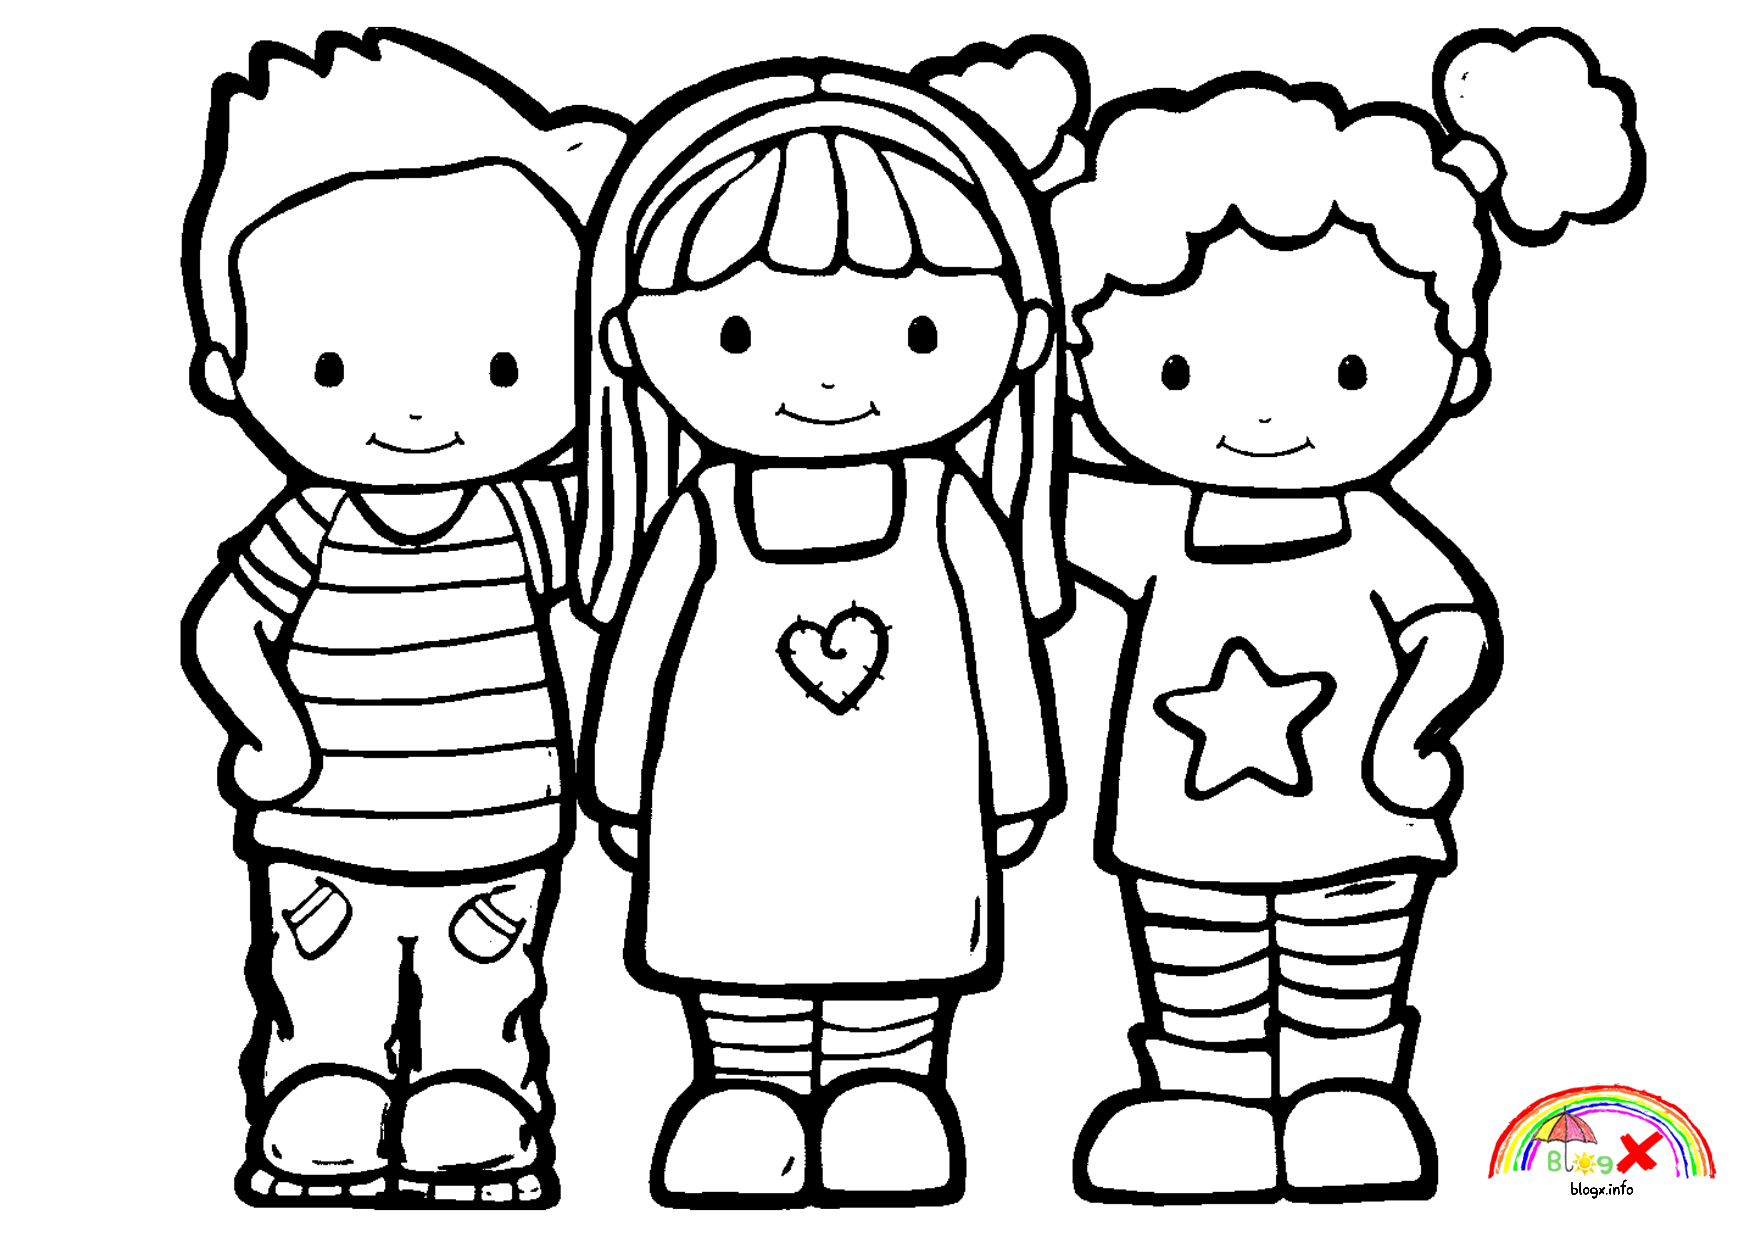 Pin By Jennifer Knoske On Sketcher1 Preschool Coloring Pages Friendship Theme Kindergarten Coloring Pages